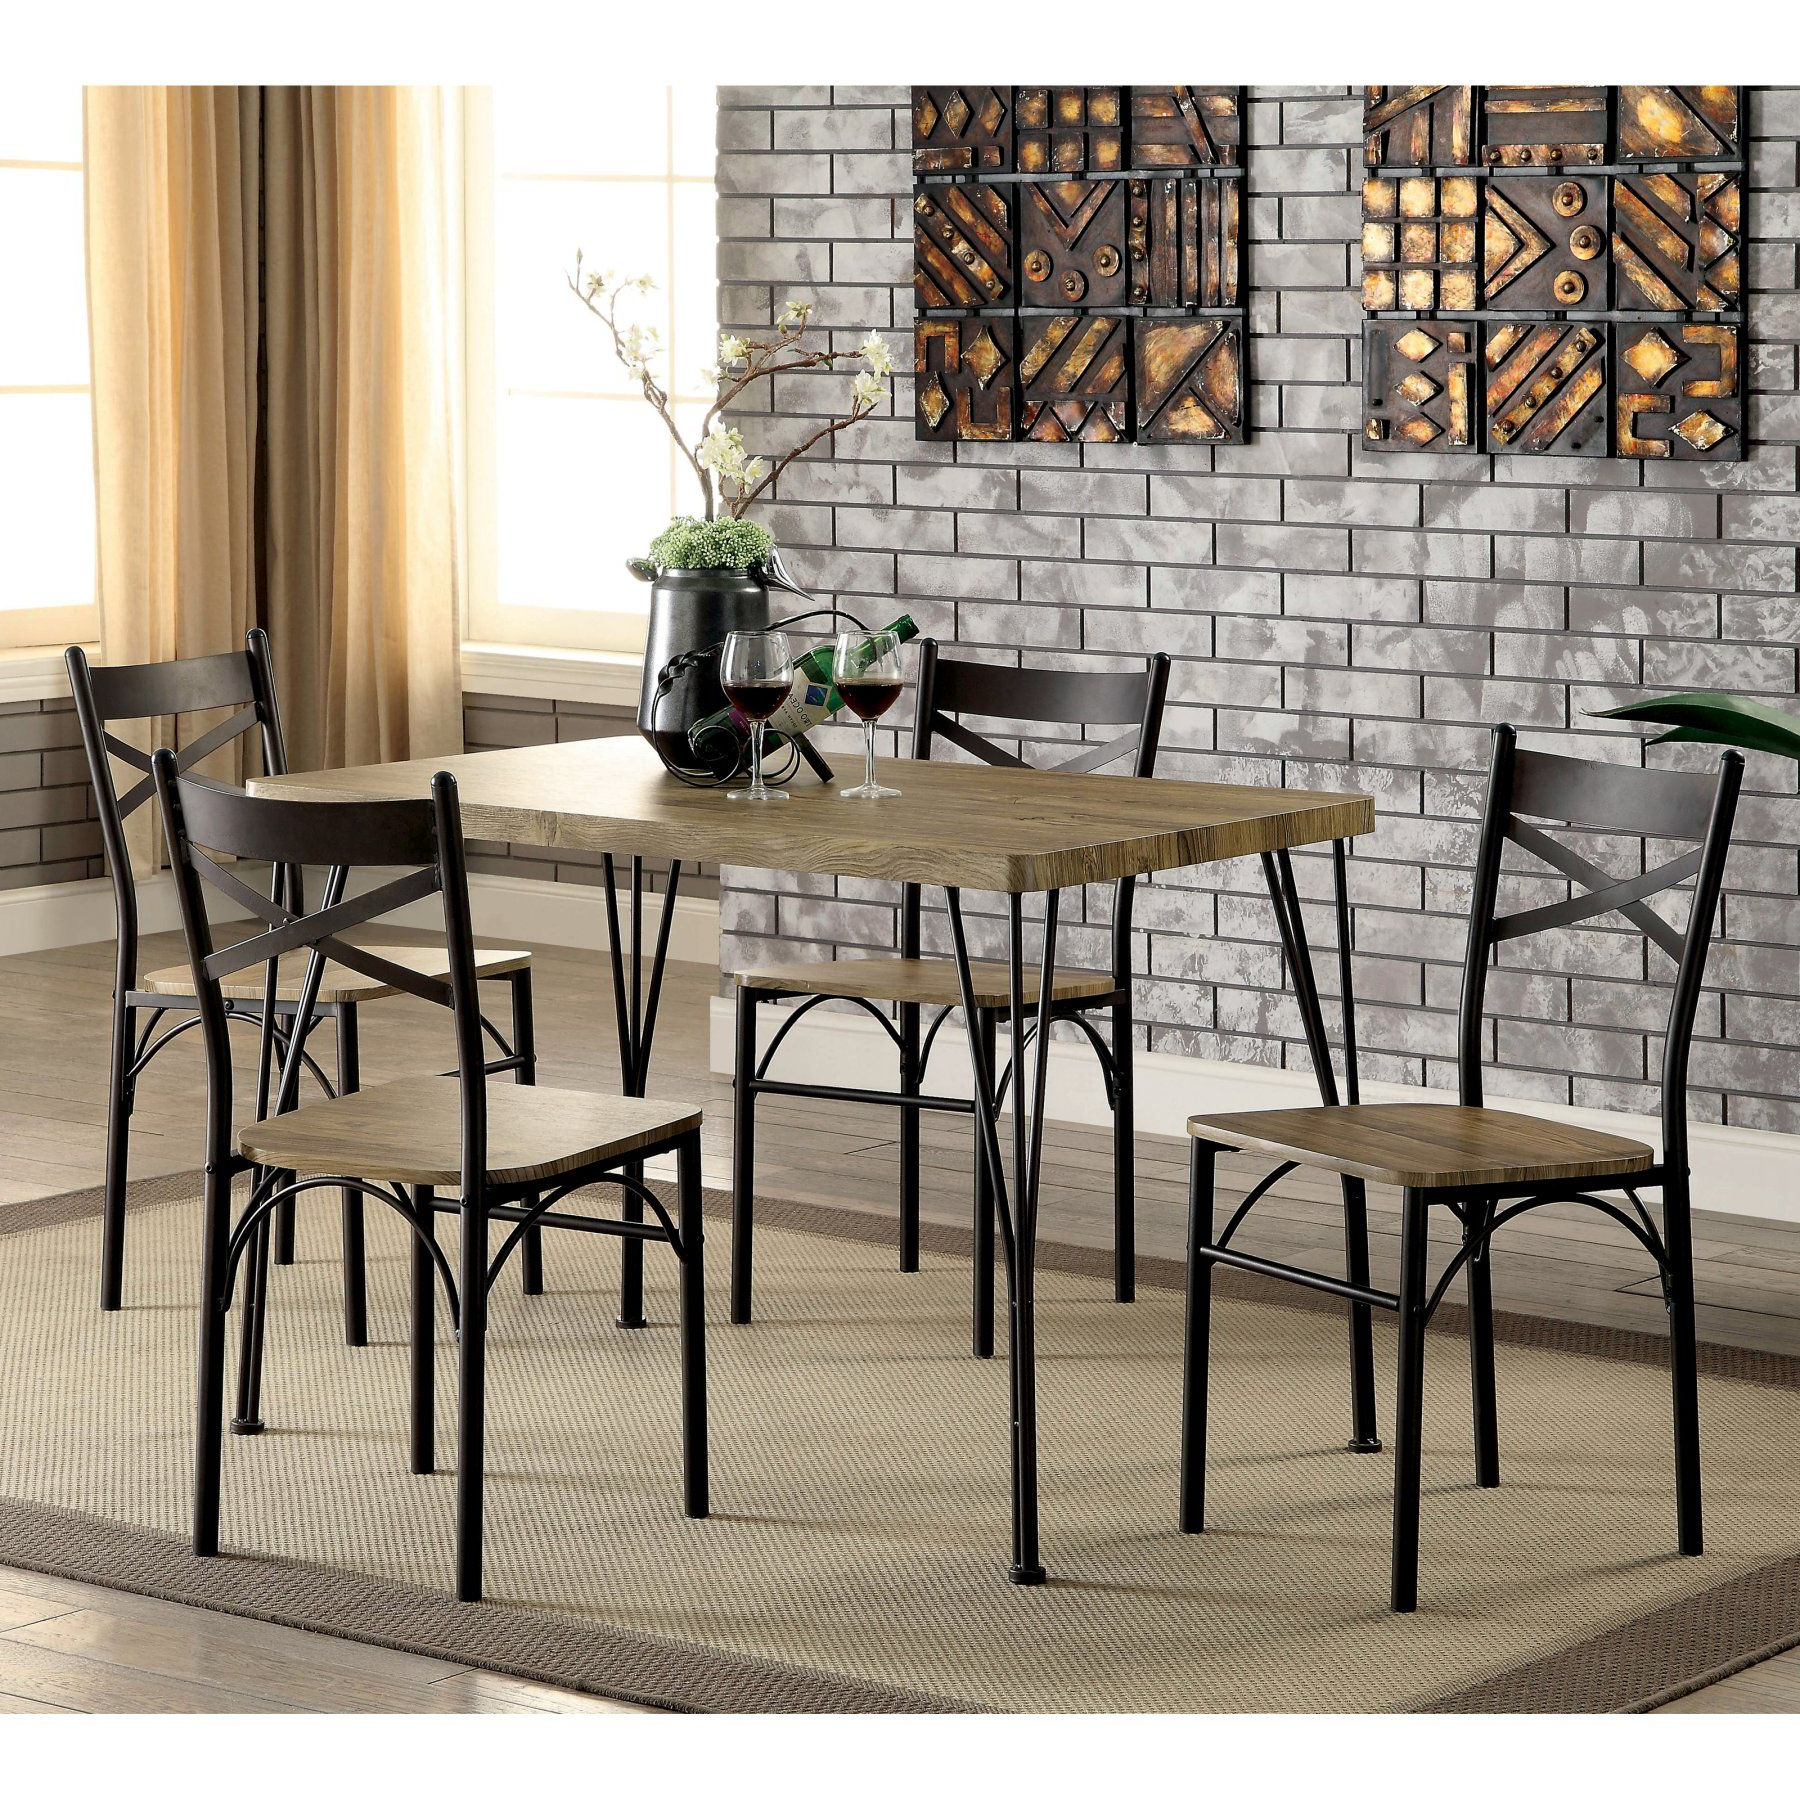 Furniture Of America Amonica 5 Piece Casual Dining Set En 2019 Pertaining To 2019 Winsted 4 Piece Counter Height Dining Sets (View 8 of 25)